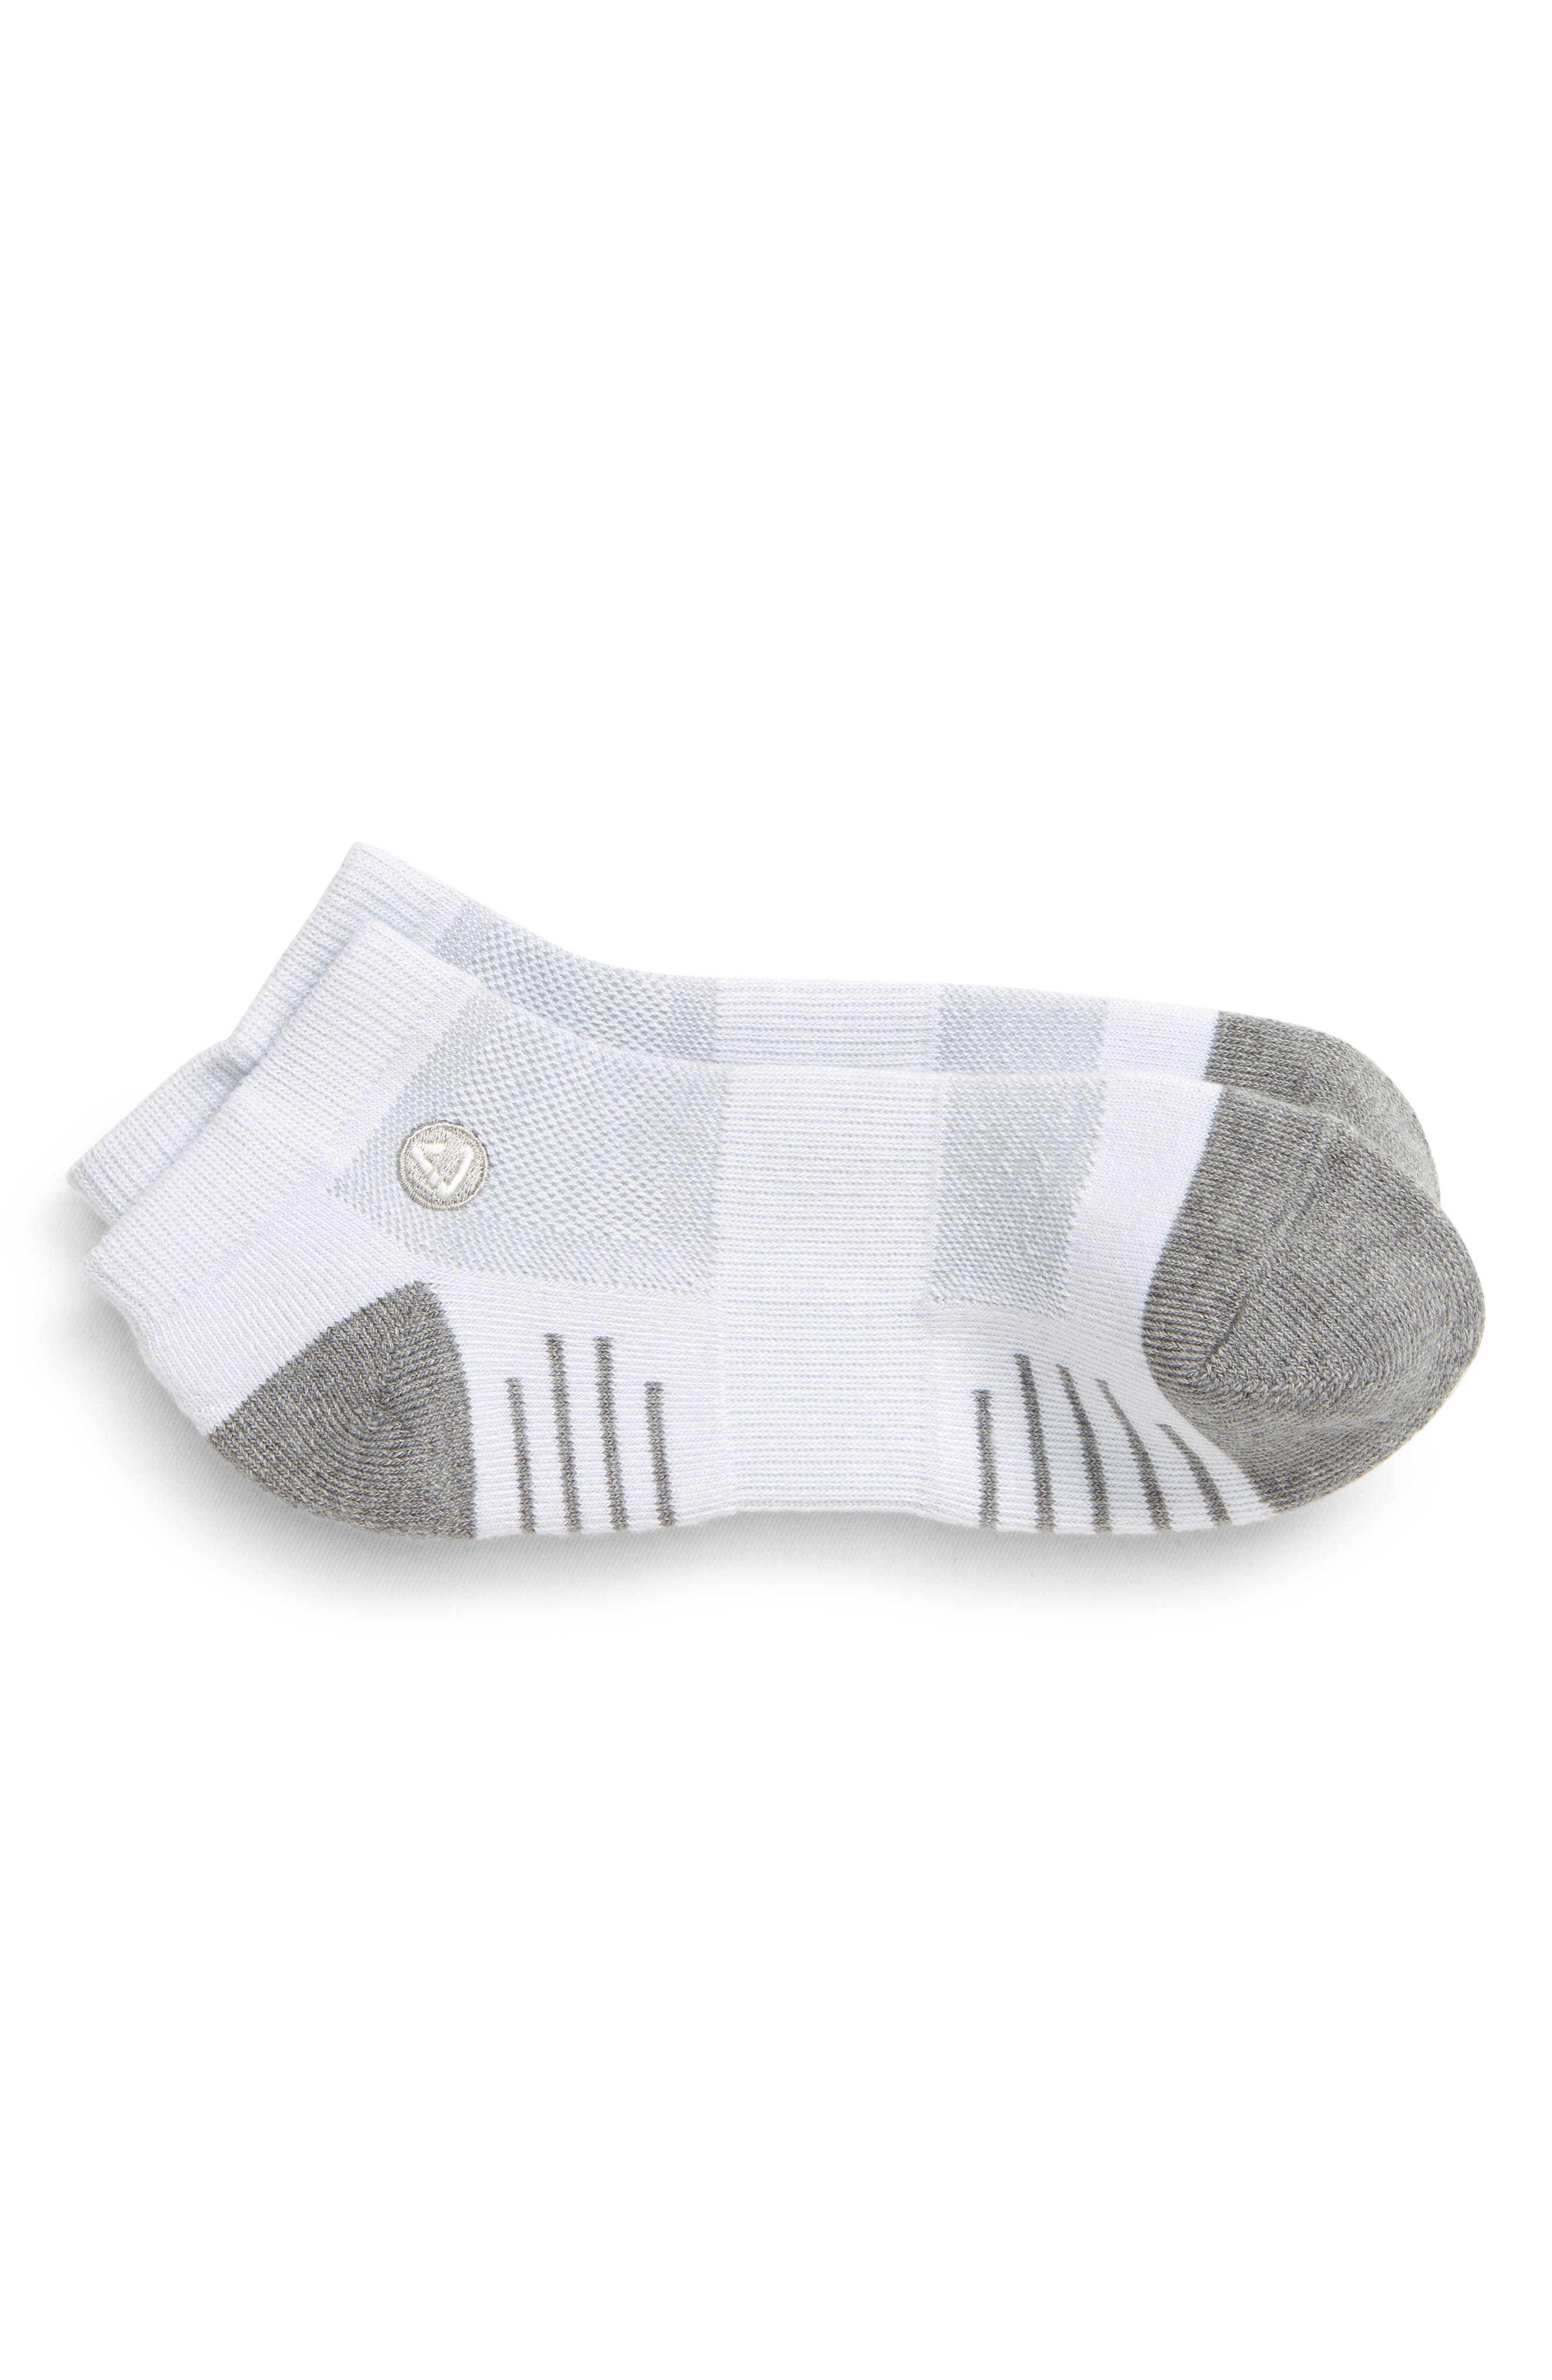 Stress-zone cushioning and targeted arch support put comfort underfoot from links to lunch in all-activity golf socks that keep each step cool and ventilated. Style Name: Travismathew Eighteener Ankle Socks. Style Number: 6117126. Available in stores.